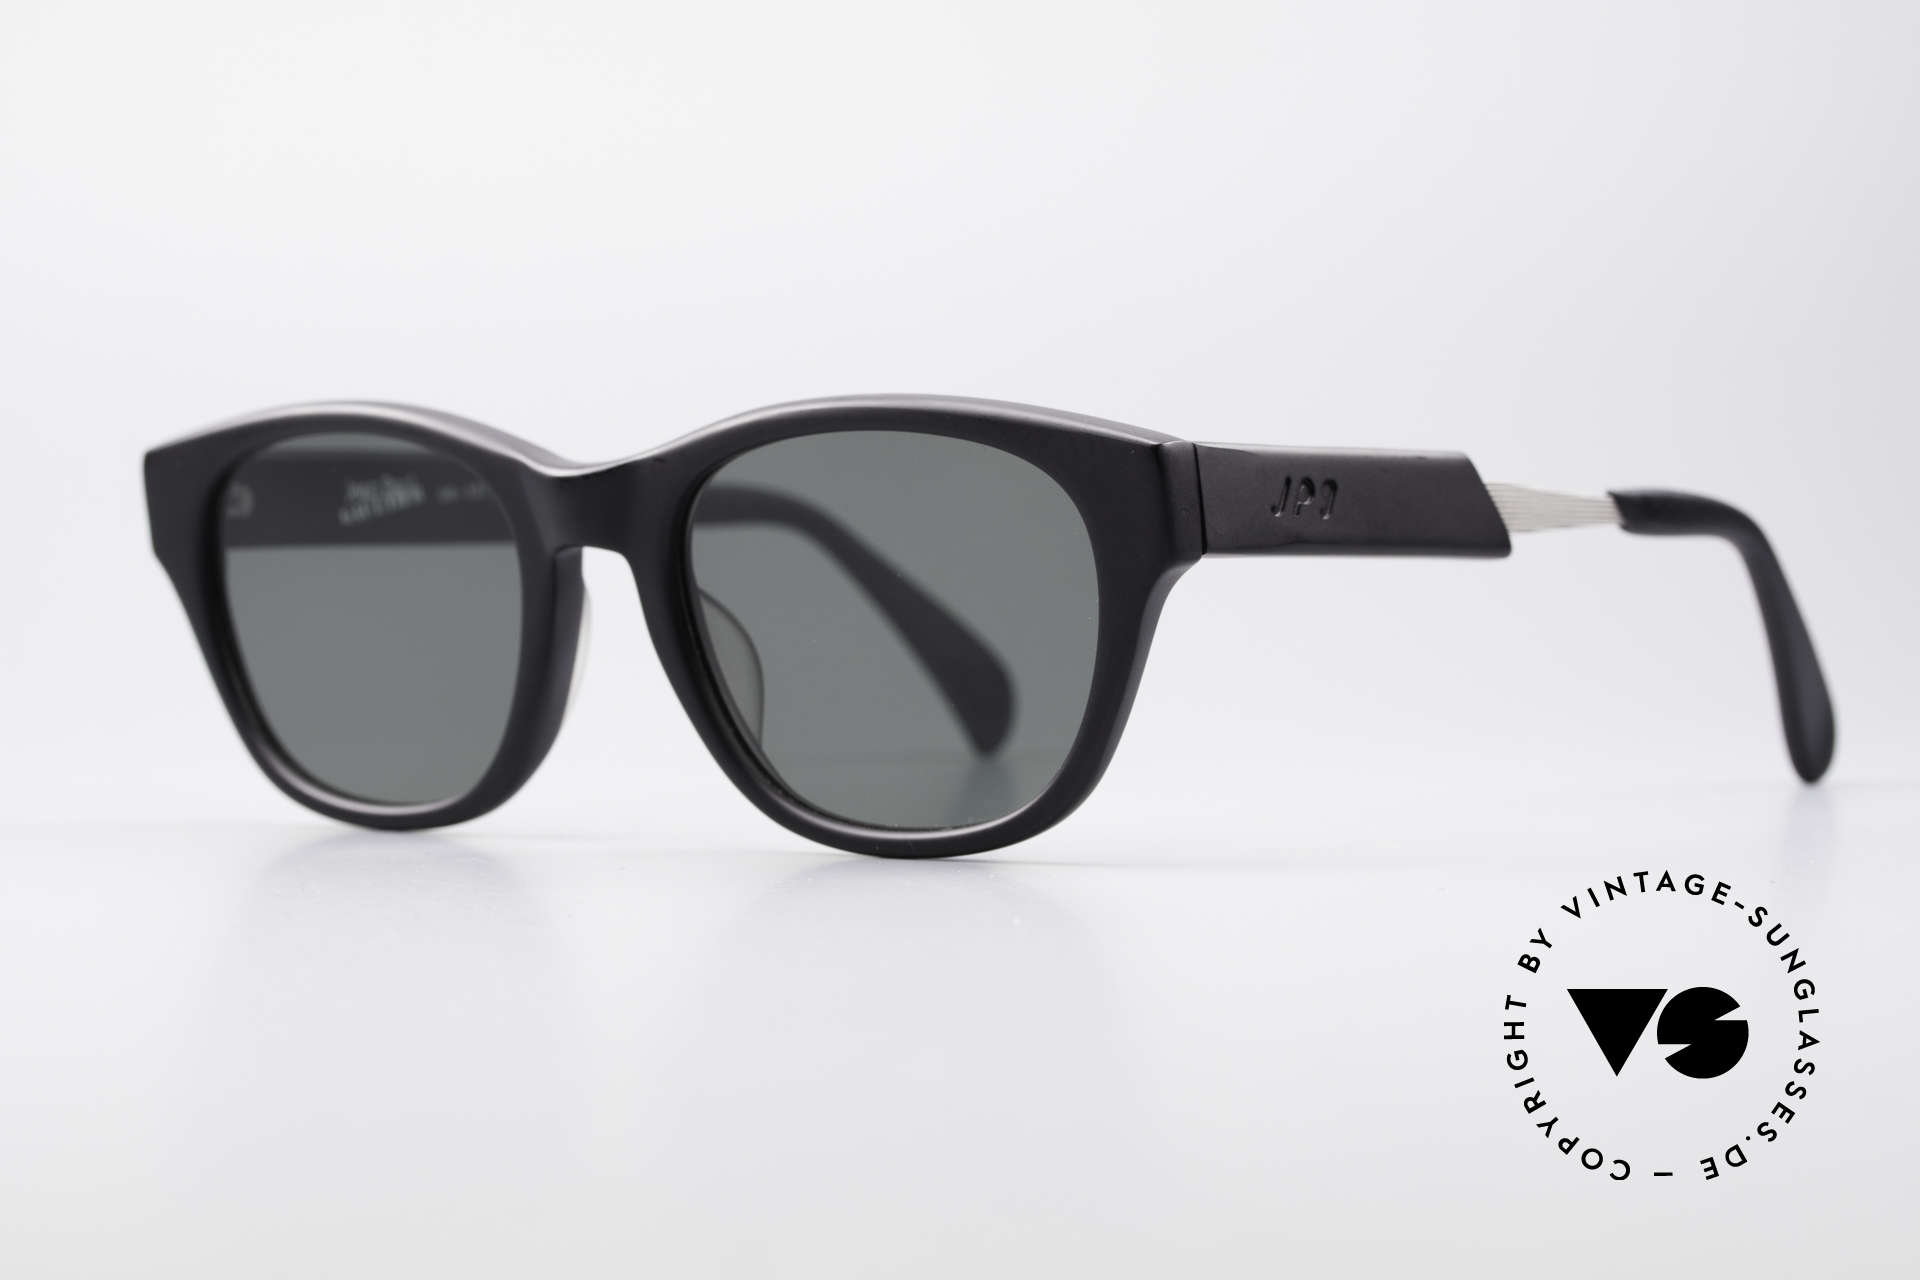 Jean Paul Gaultier 56-1071 Designer 90's Sunglasses, tangible top-quality .. distinctive JPG, made in Japan, Made for Men and Women